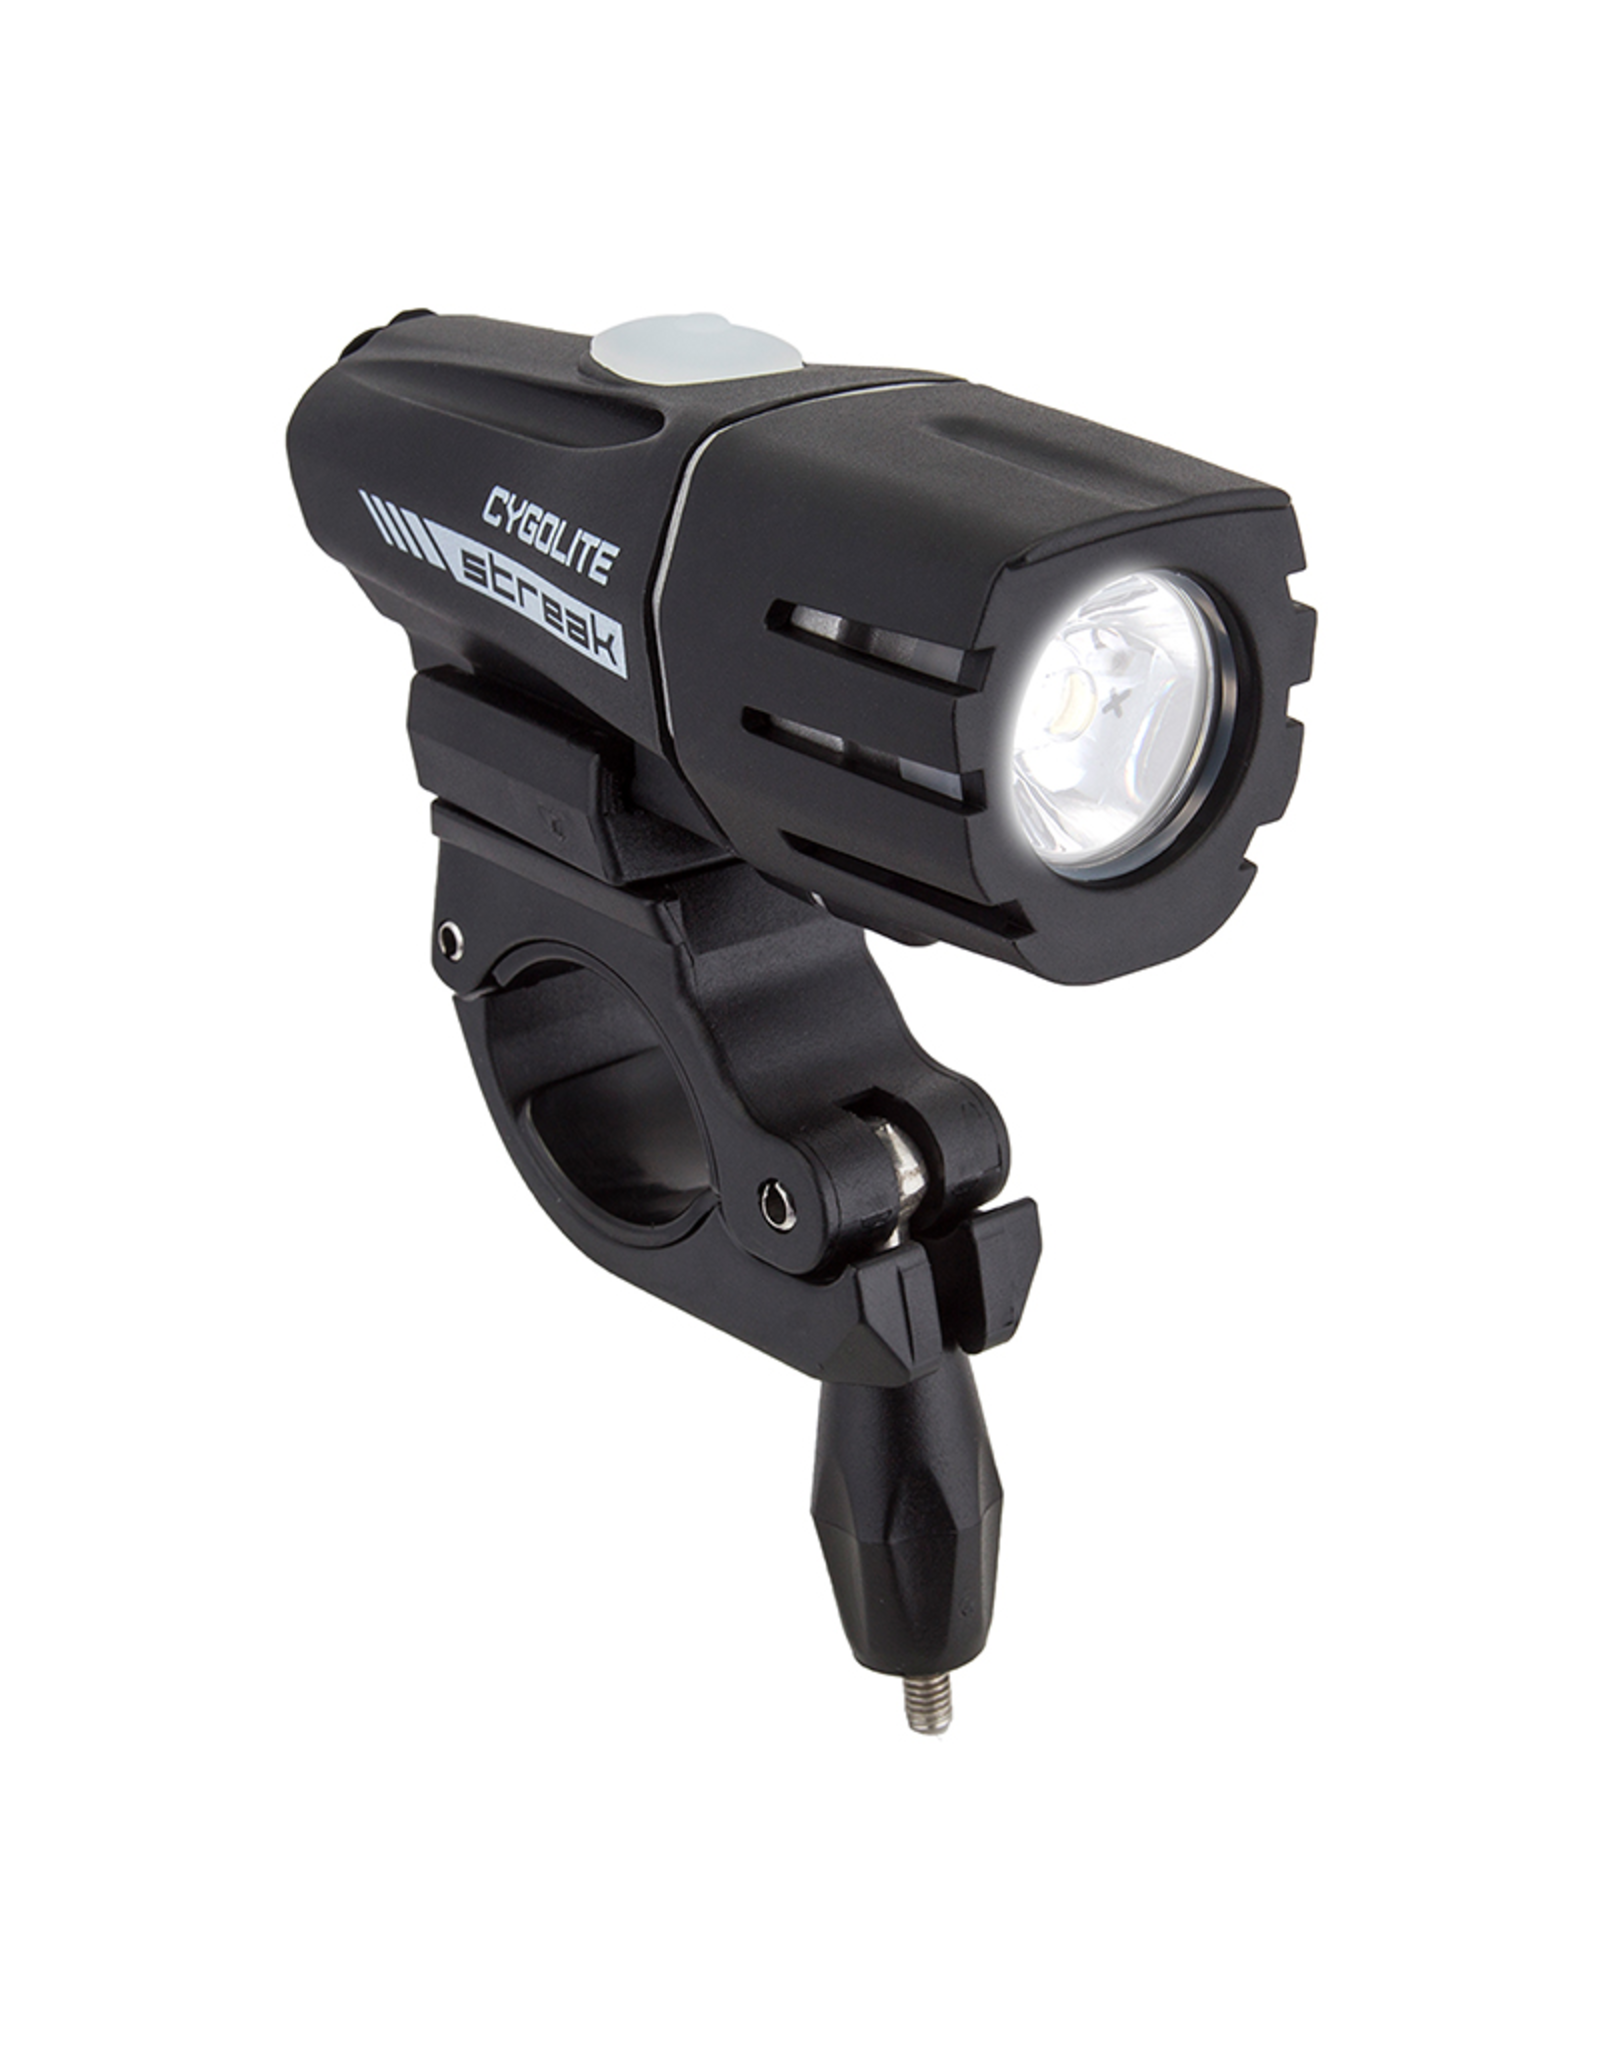 CygoLite Cygolite Streak 450 Rechargeable USB Headlight